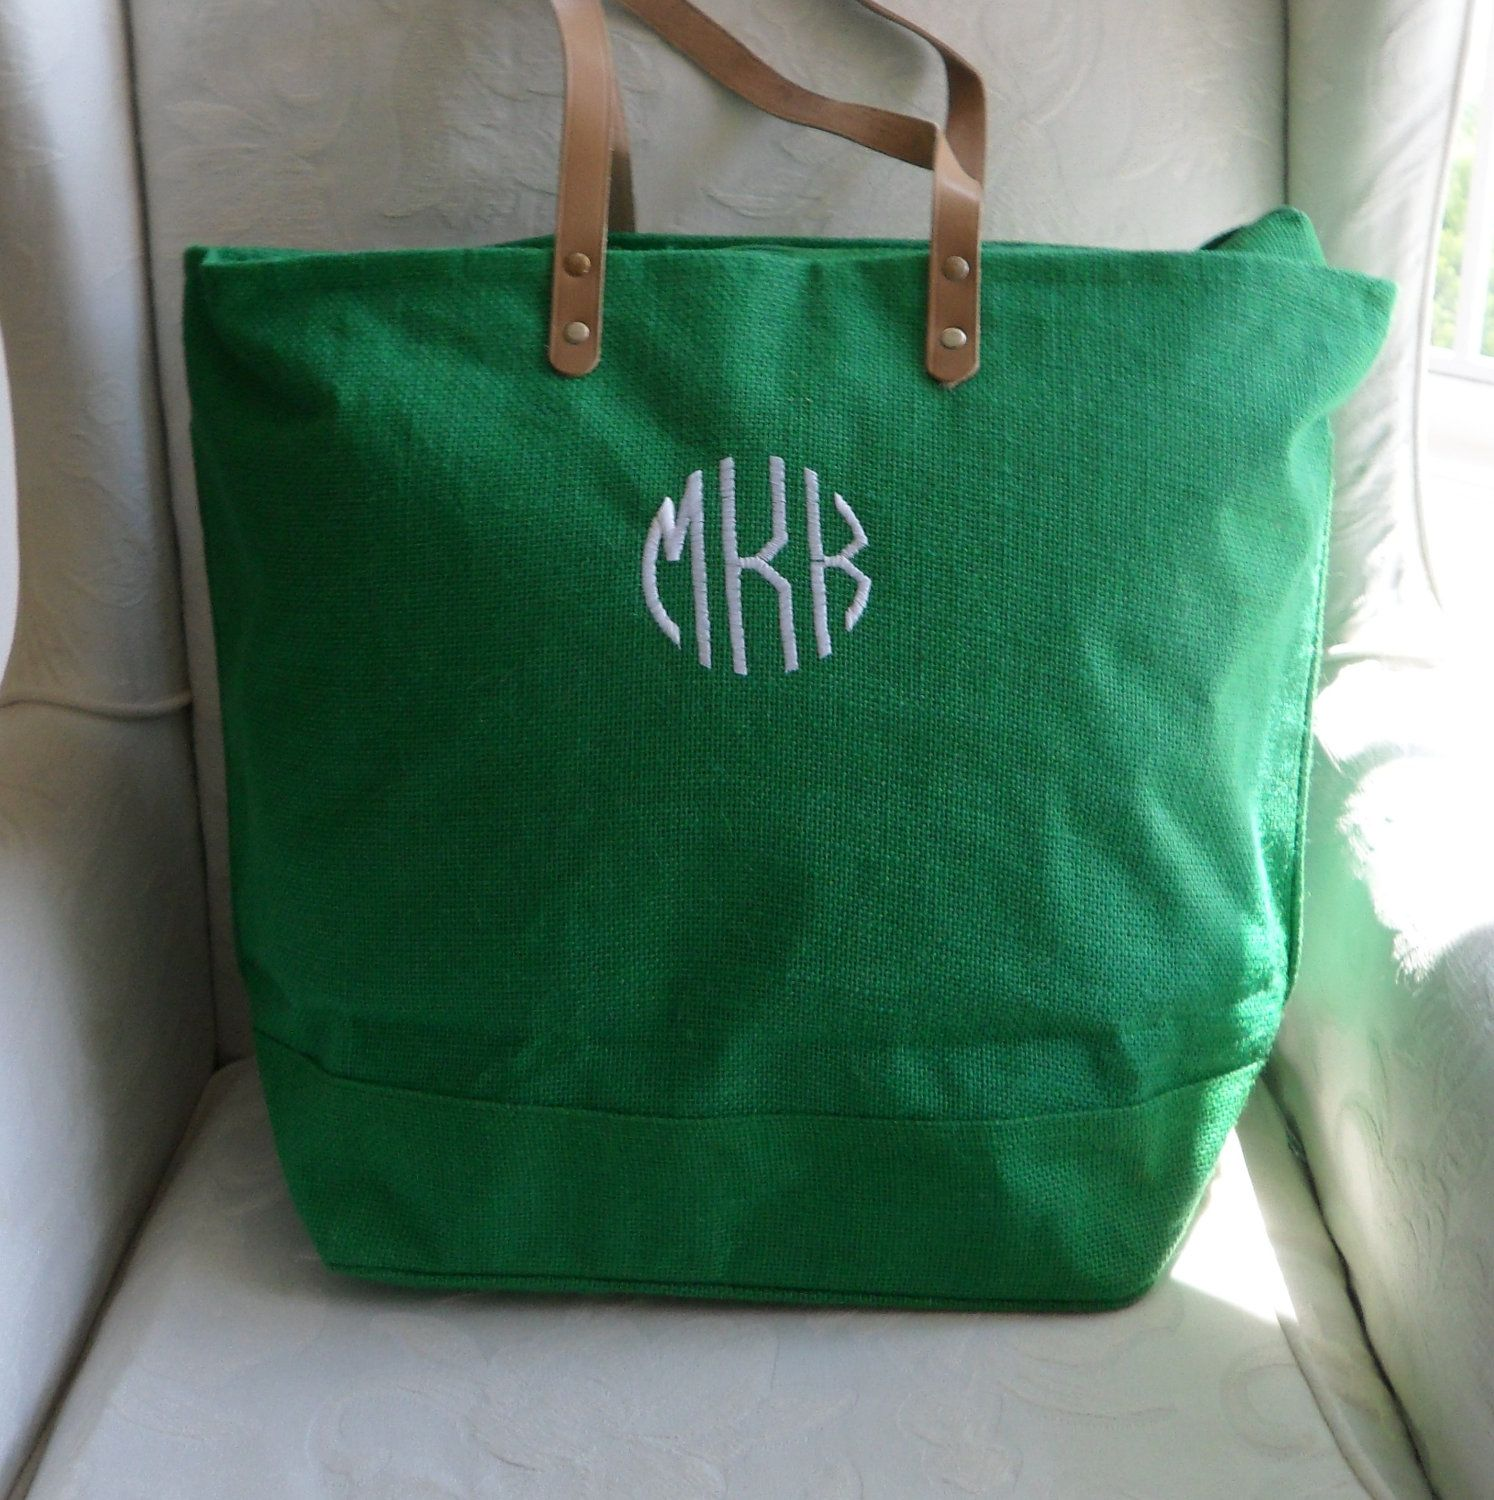 Monogram Kelly Green Jute Tote Bag